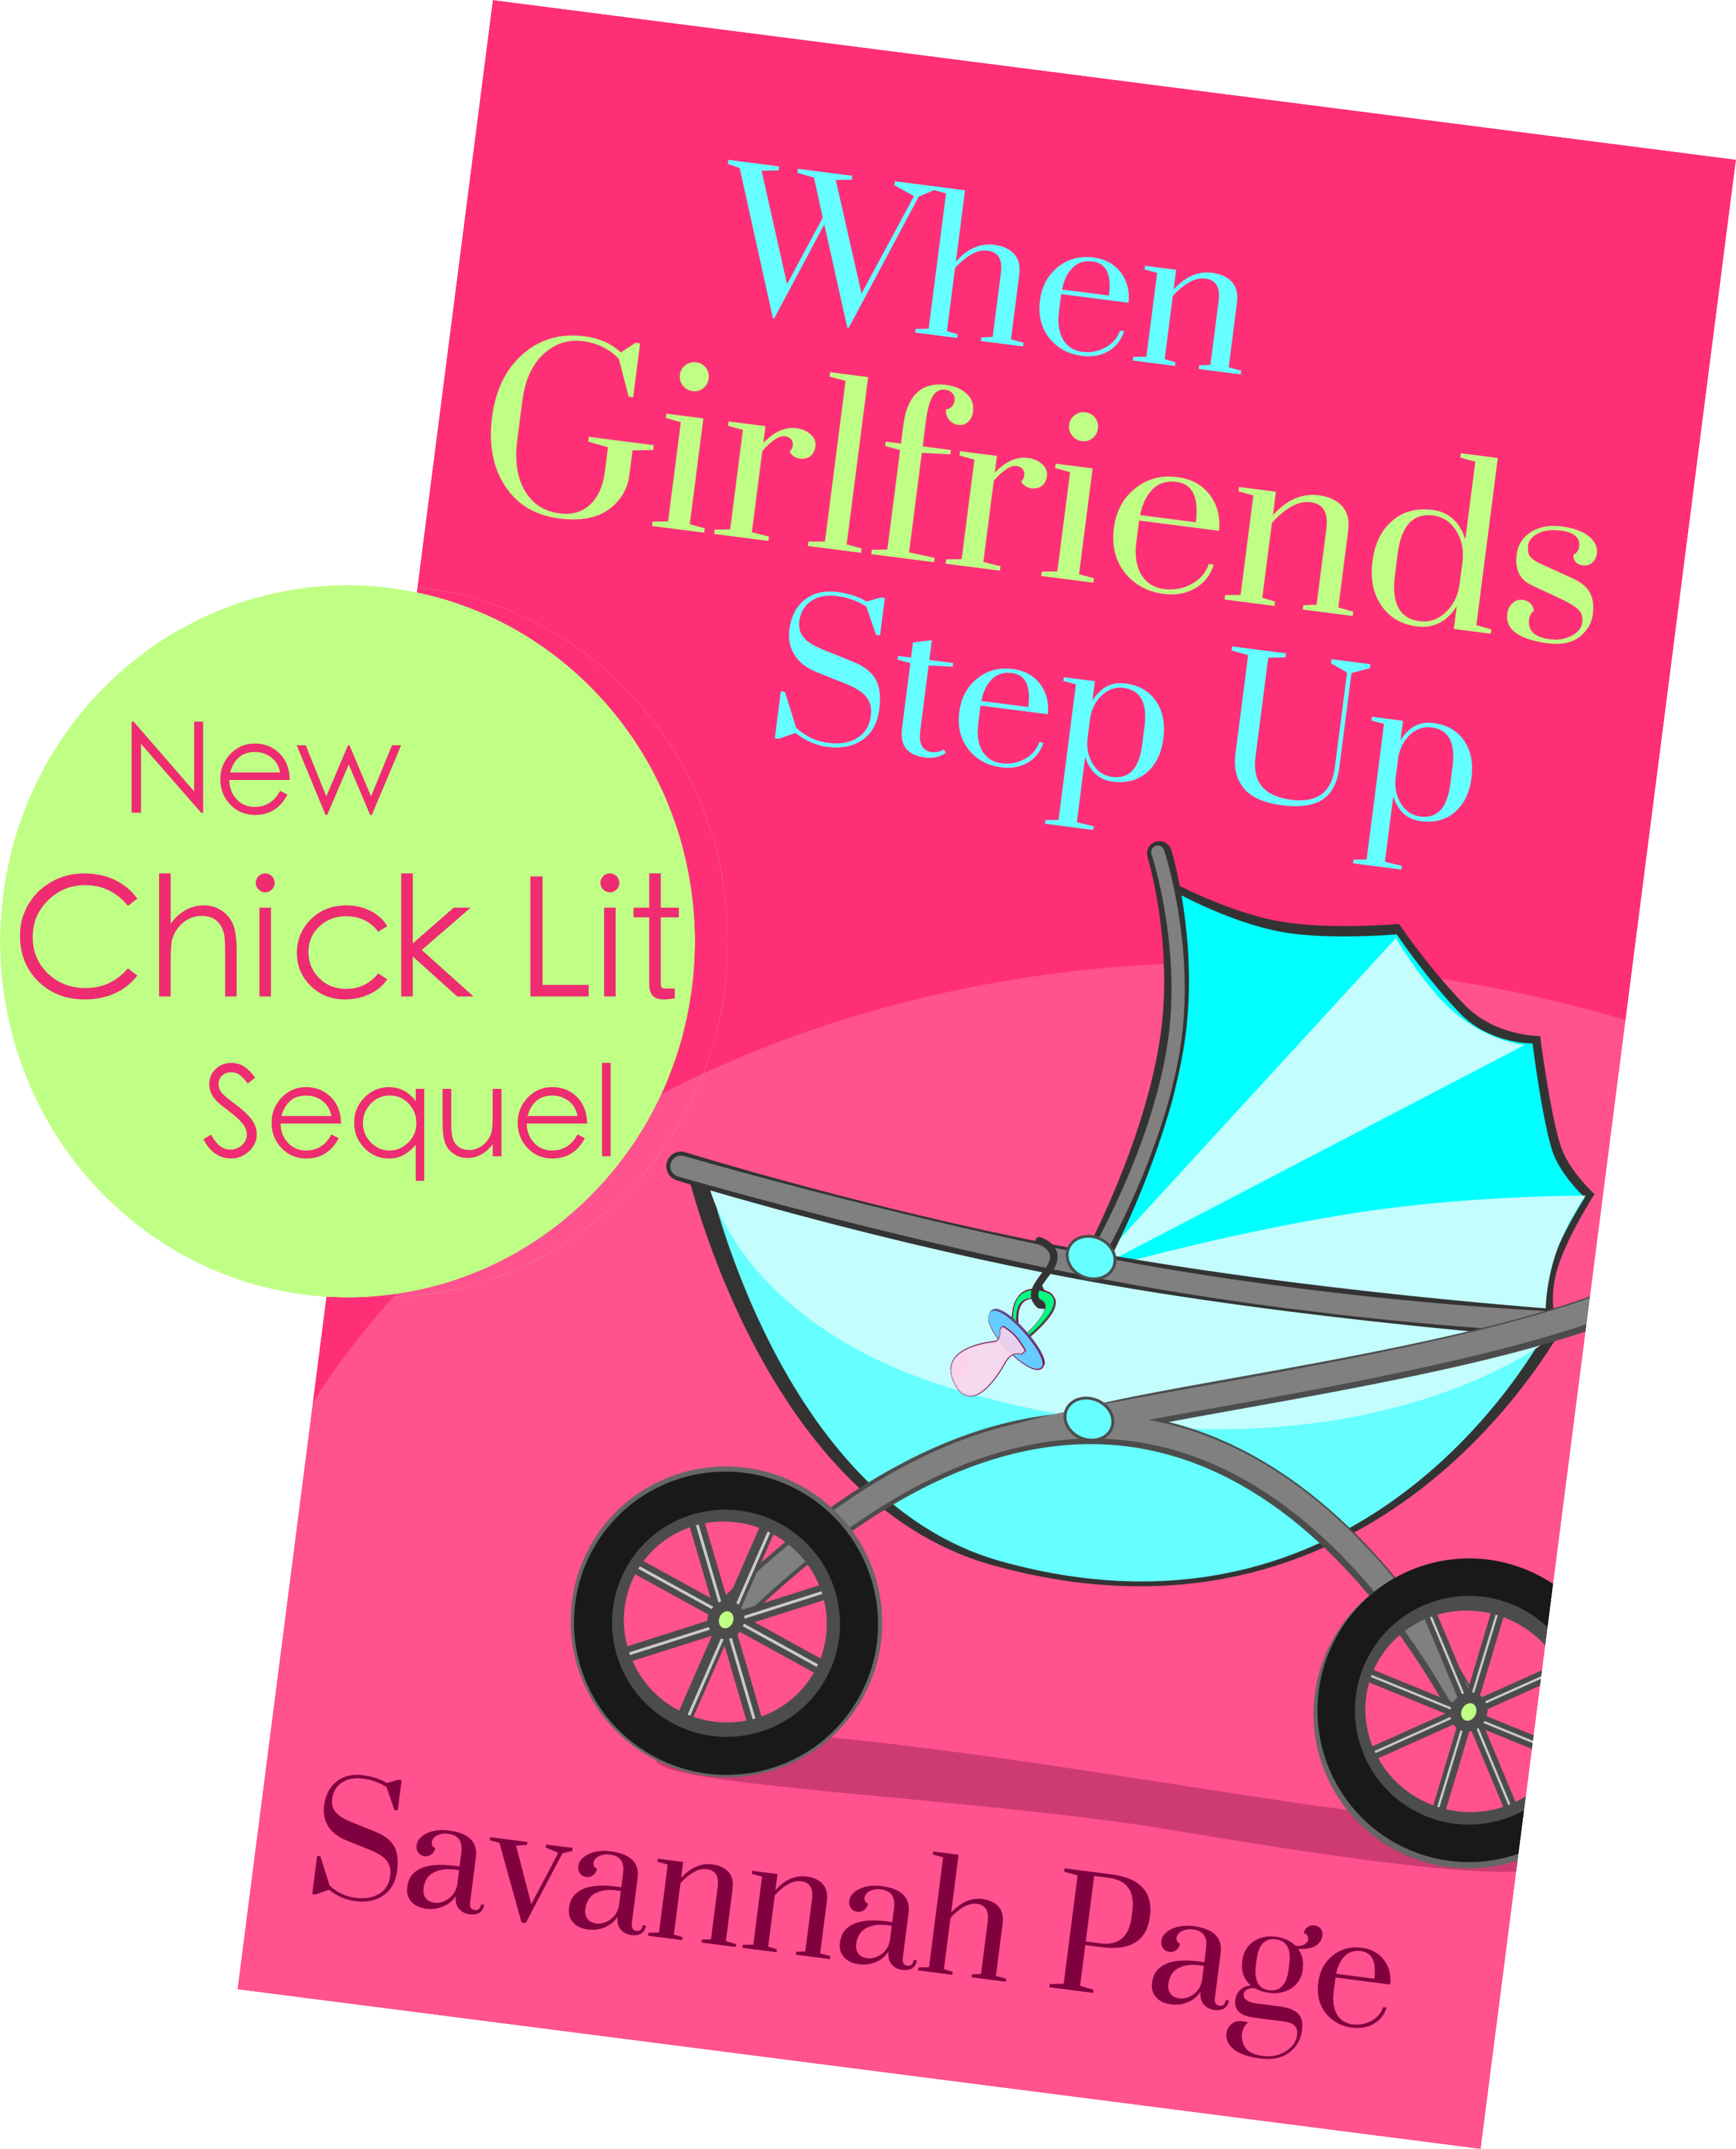 When Girlfriends Step Up - Chick Lit Novel by Savannah Page - Twitter